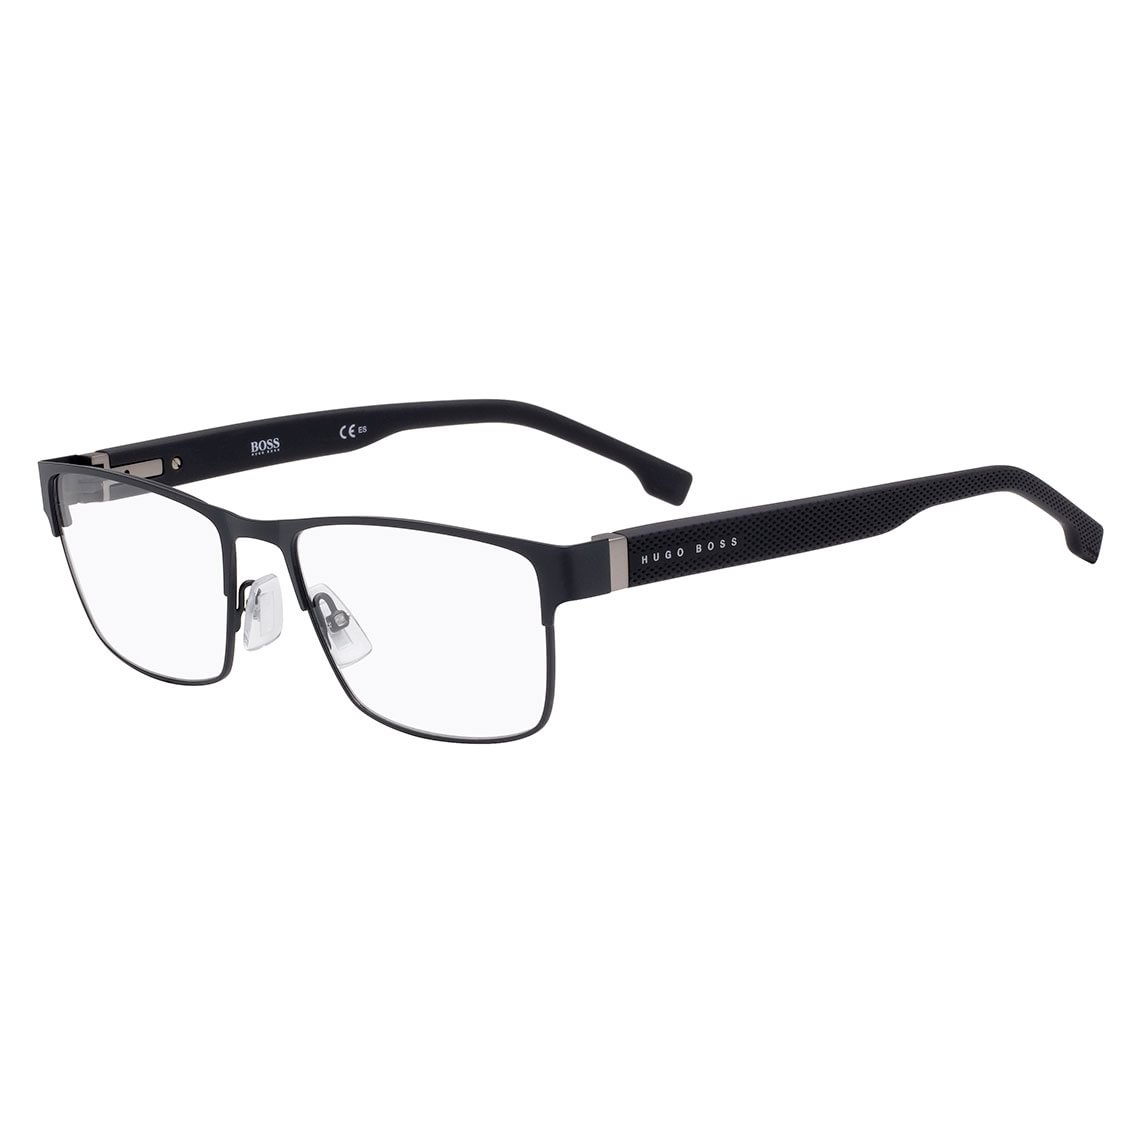 Hugo Boss BOSS 1040 RIW 5718